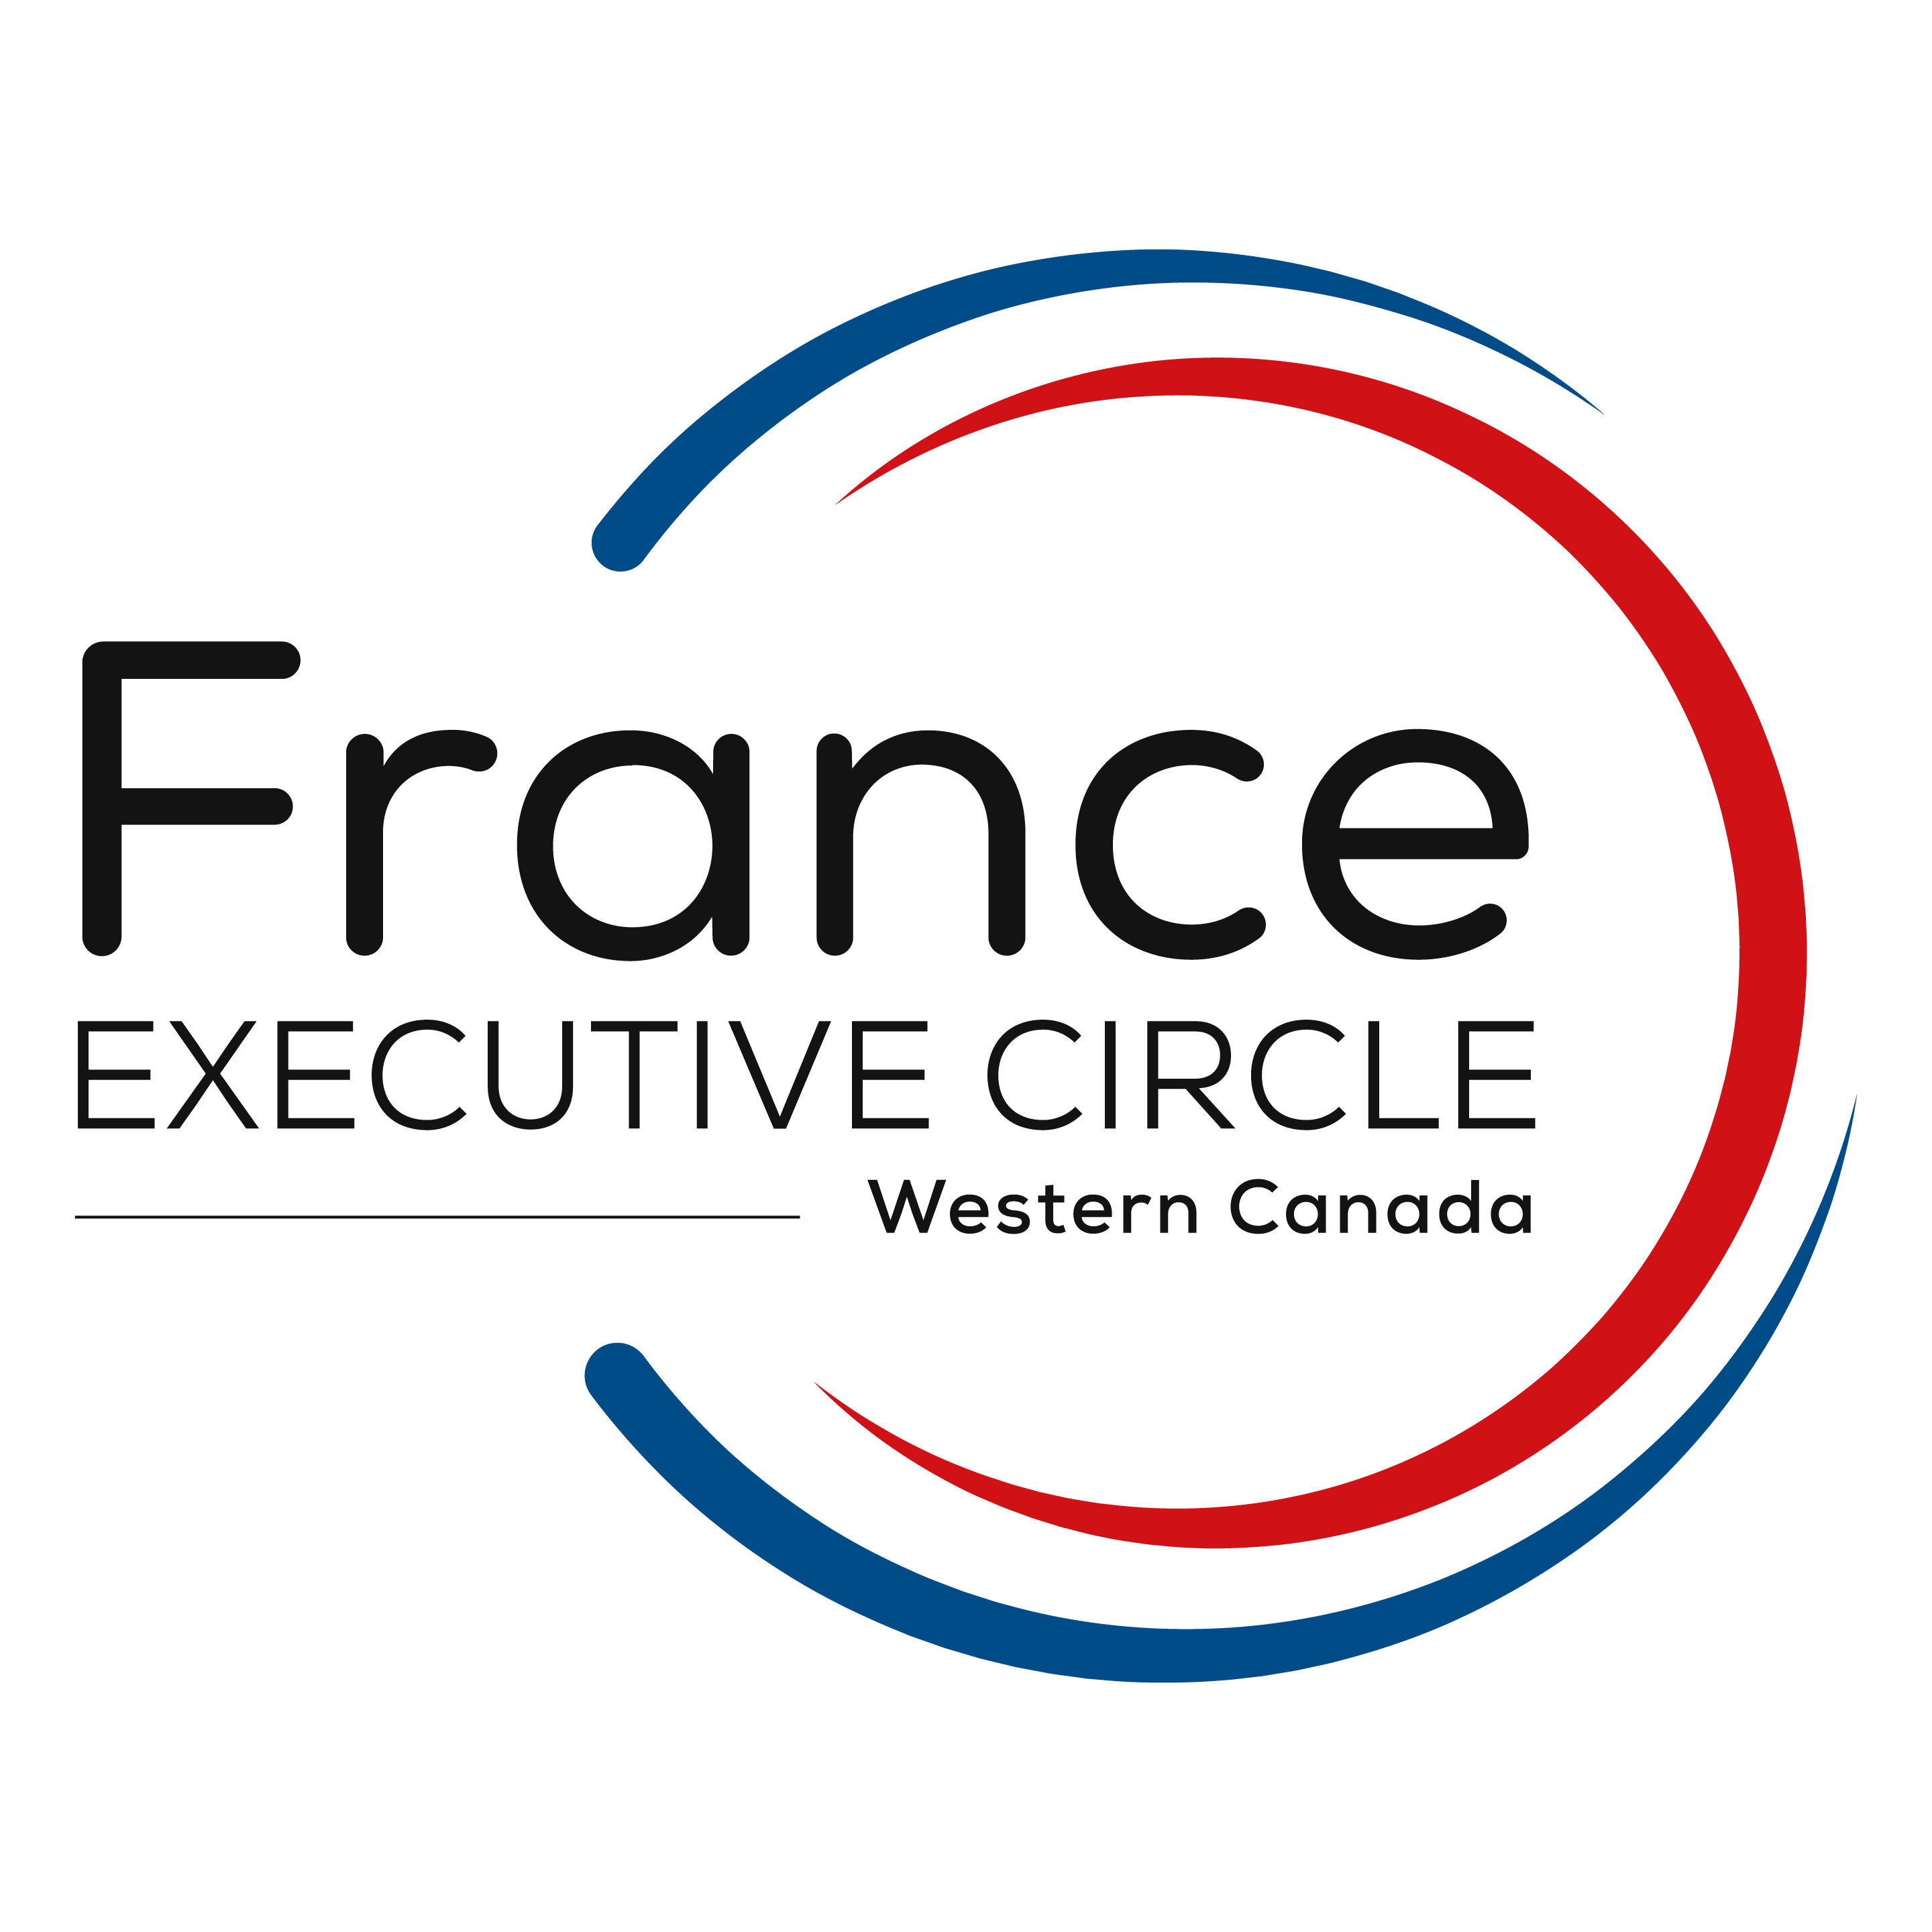 France Executive Circle Logo | Colors